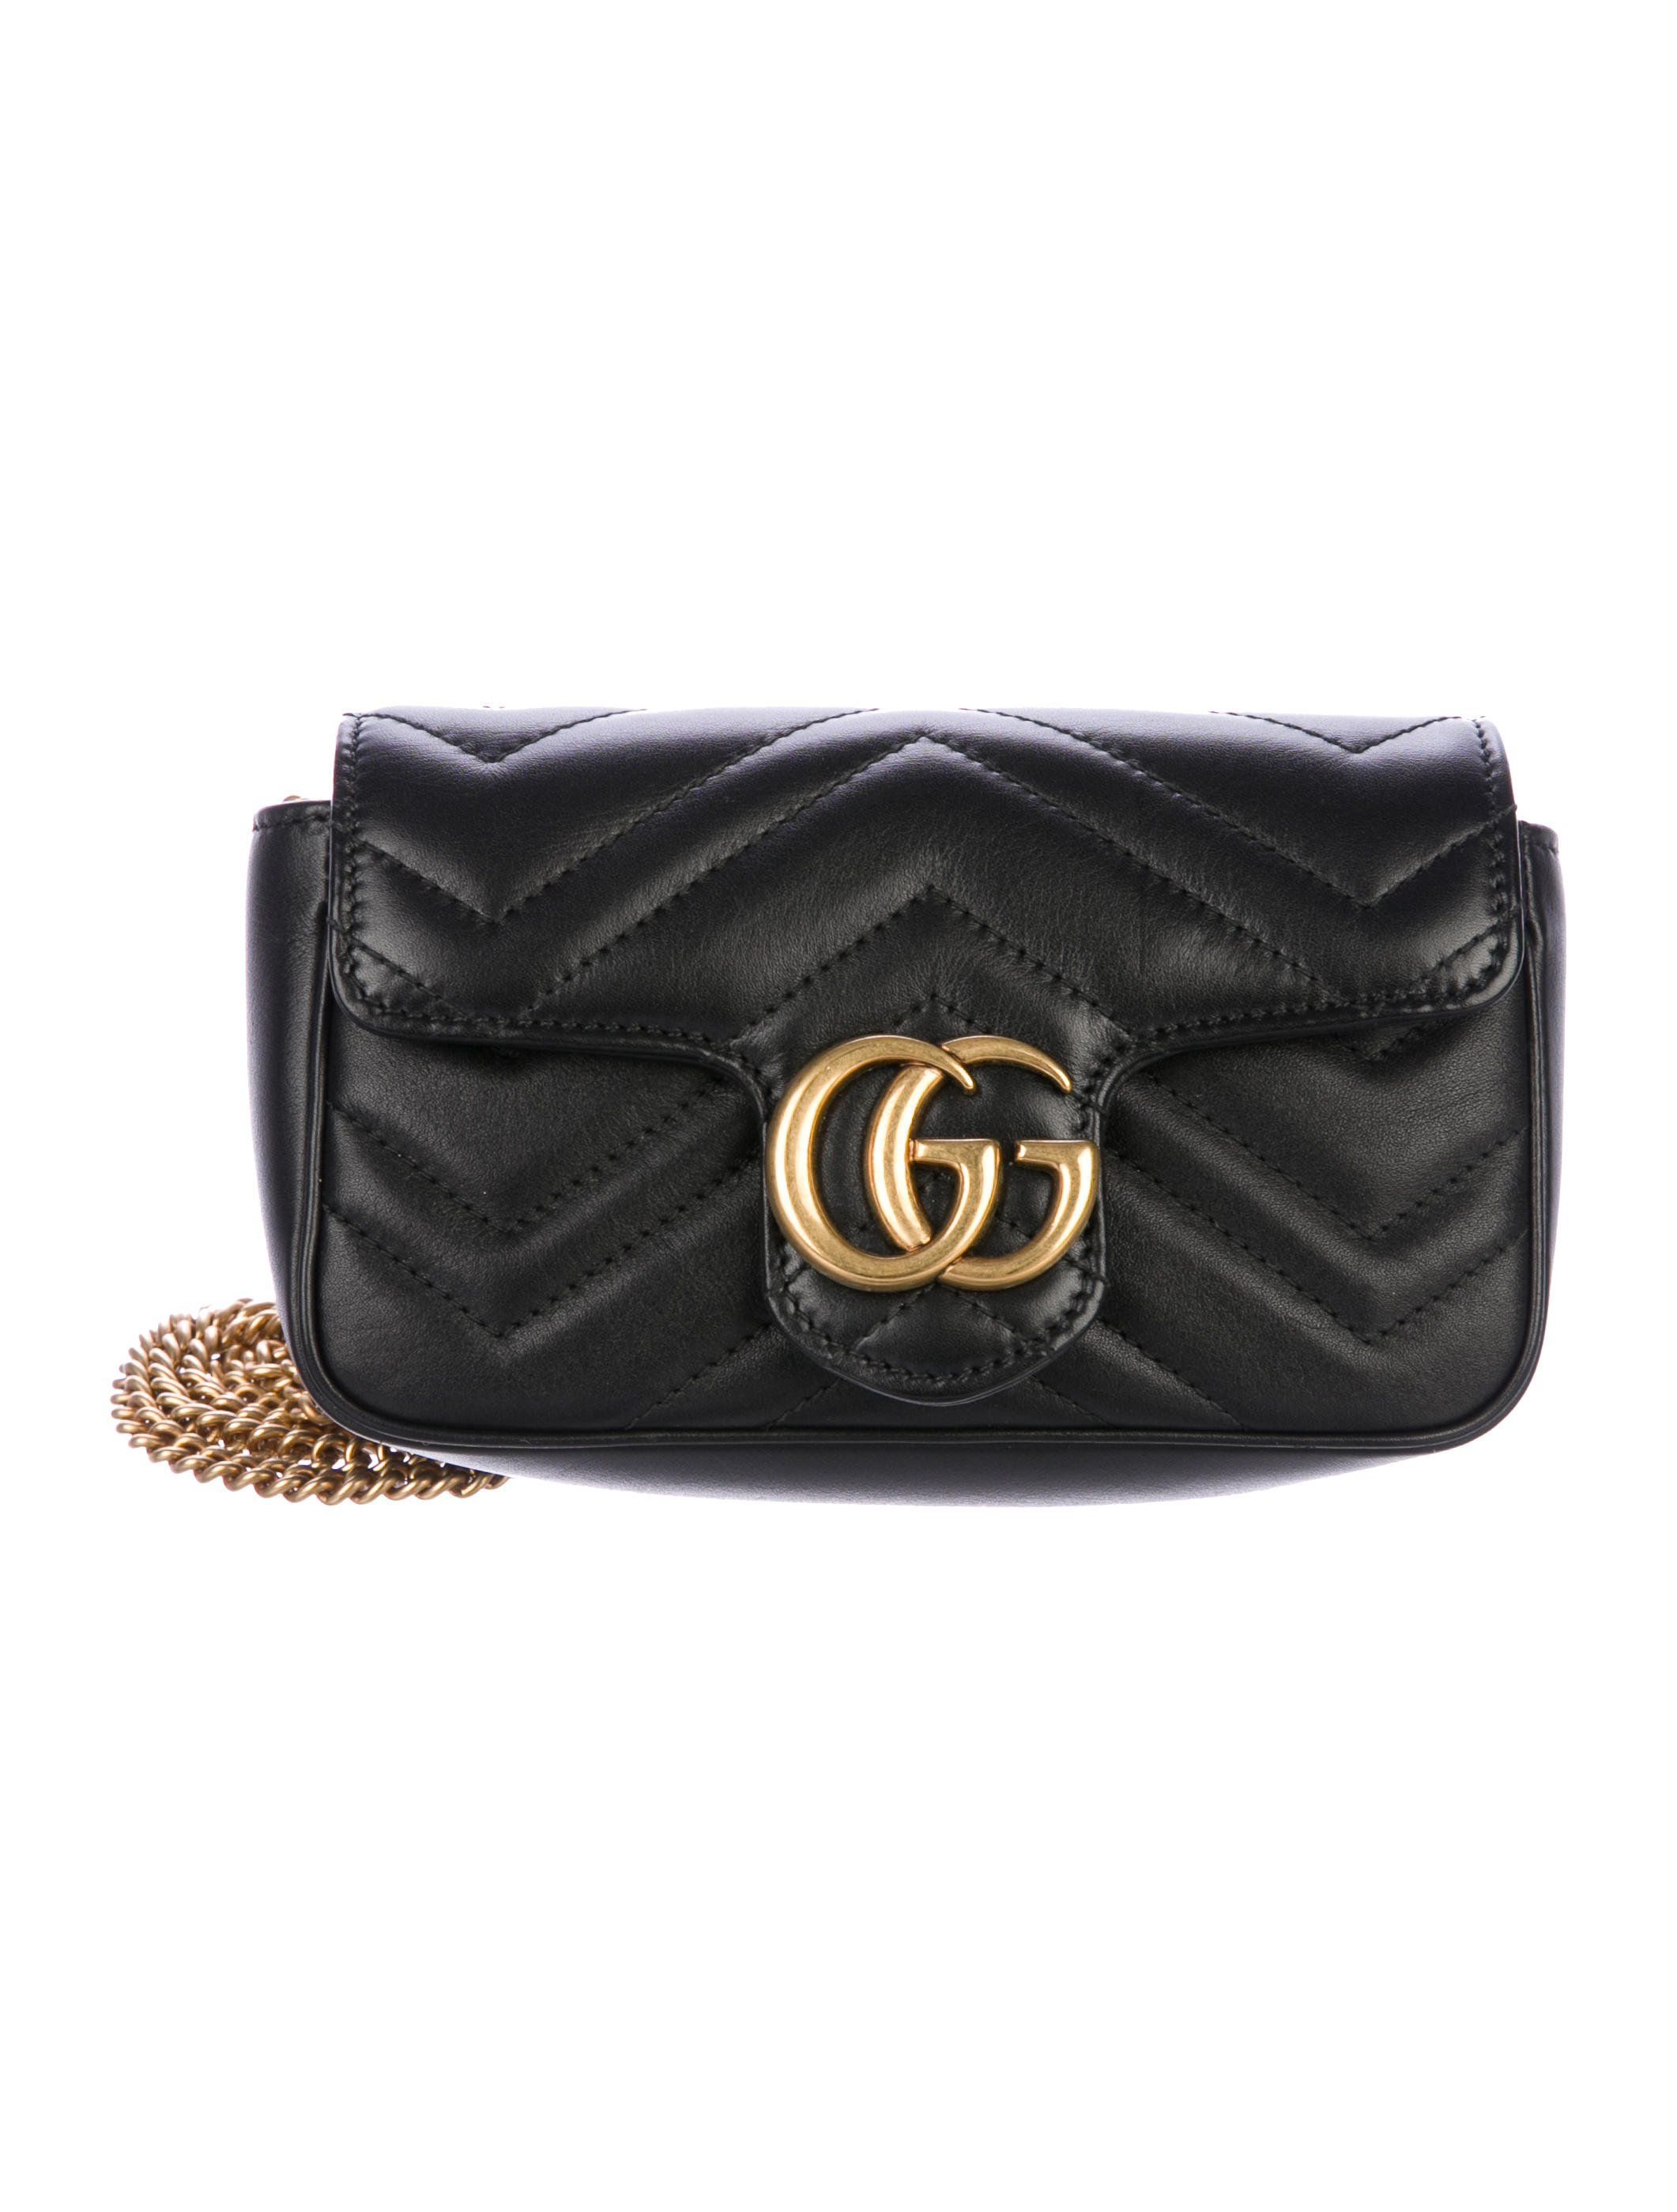 f6d3a3f6bd6e From the Current Collection. Black matelassé chevron leather Gucci Marmont  super mini bag with brass